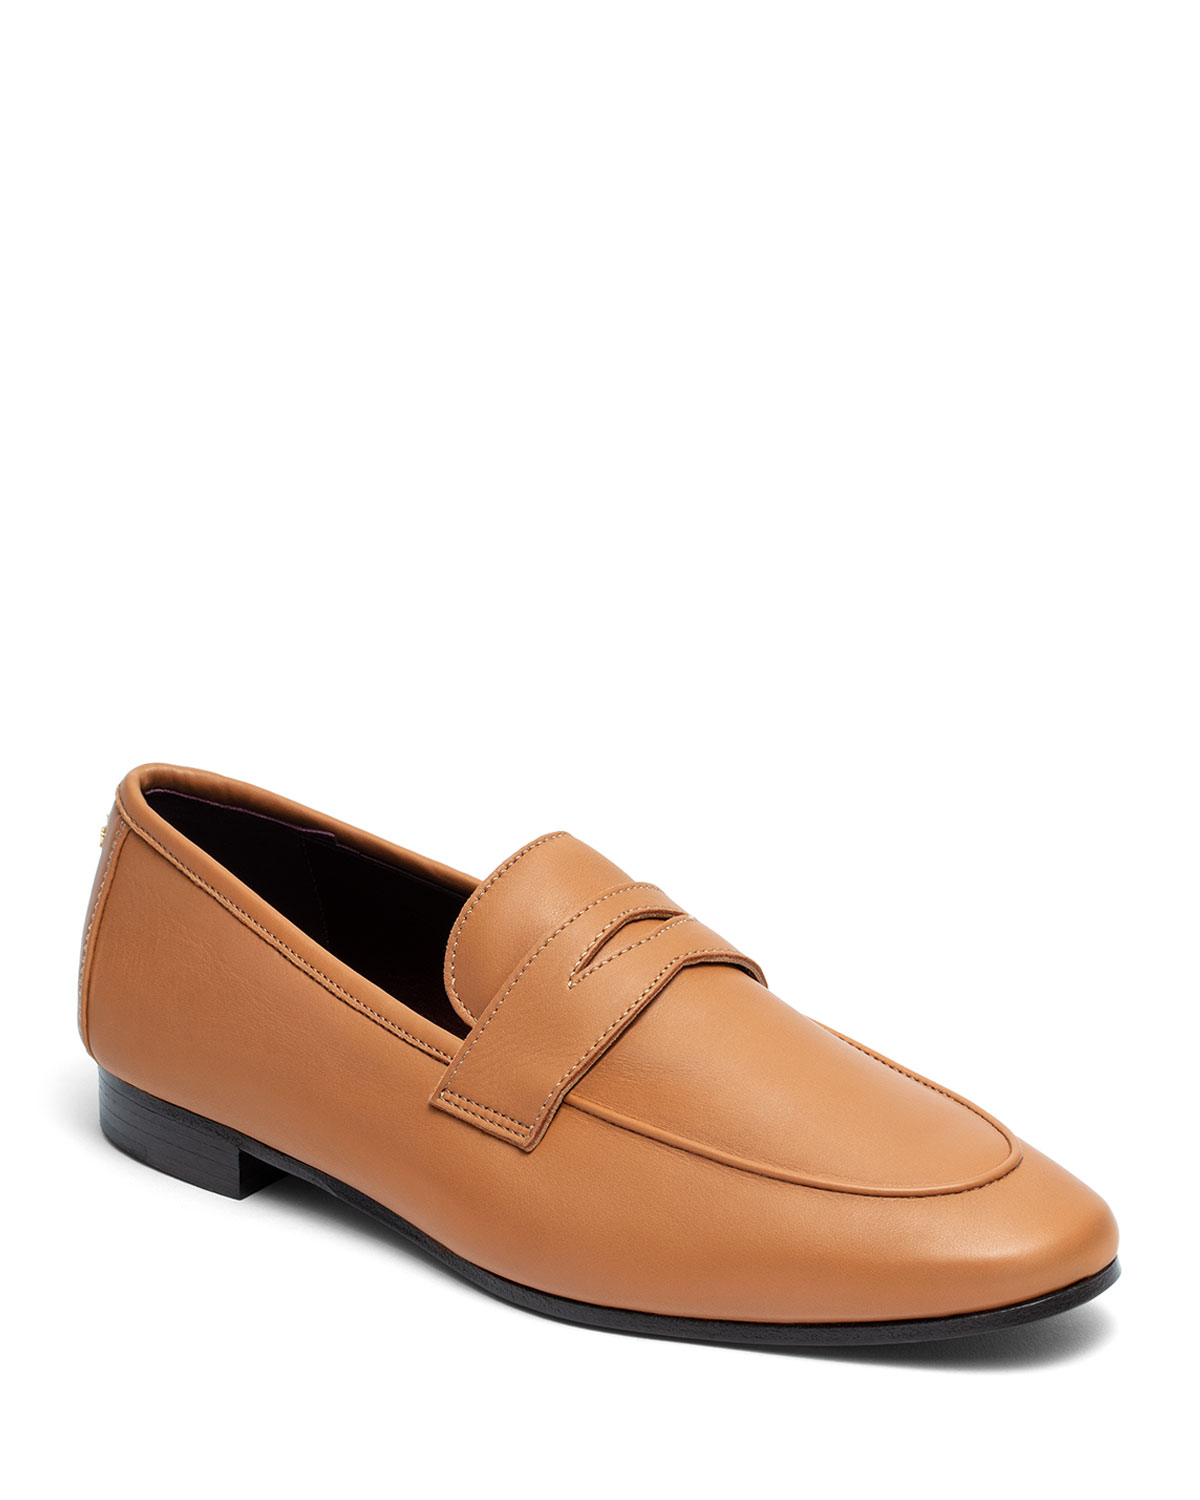 BOUGEOTTE Acajou Leather Penny Loafers in Brown